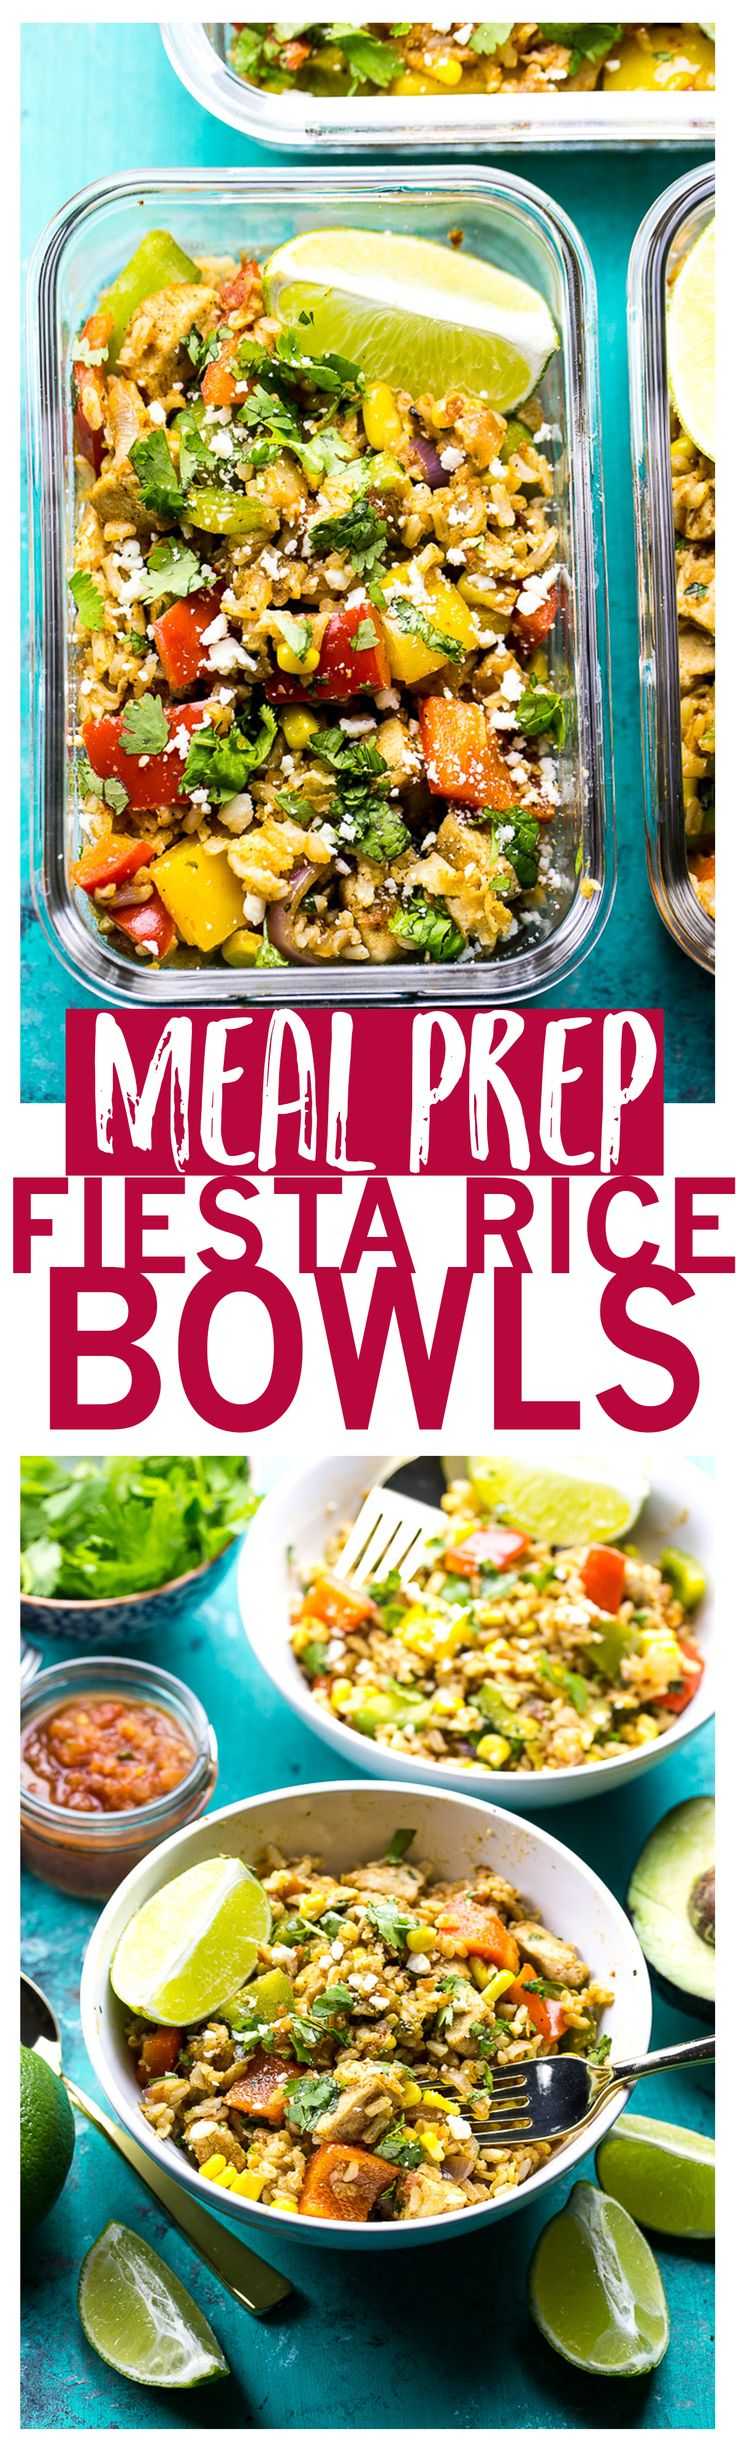 Fiesta Chicken Rice Bowls | Gluten-free | 20-Minute Meal Prep